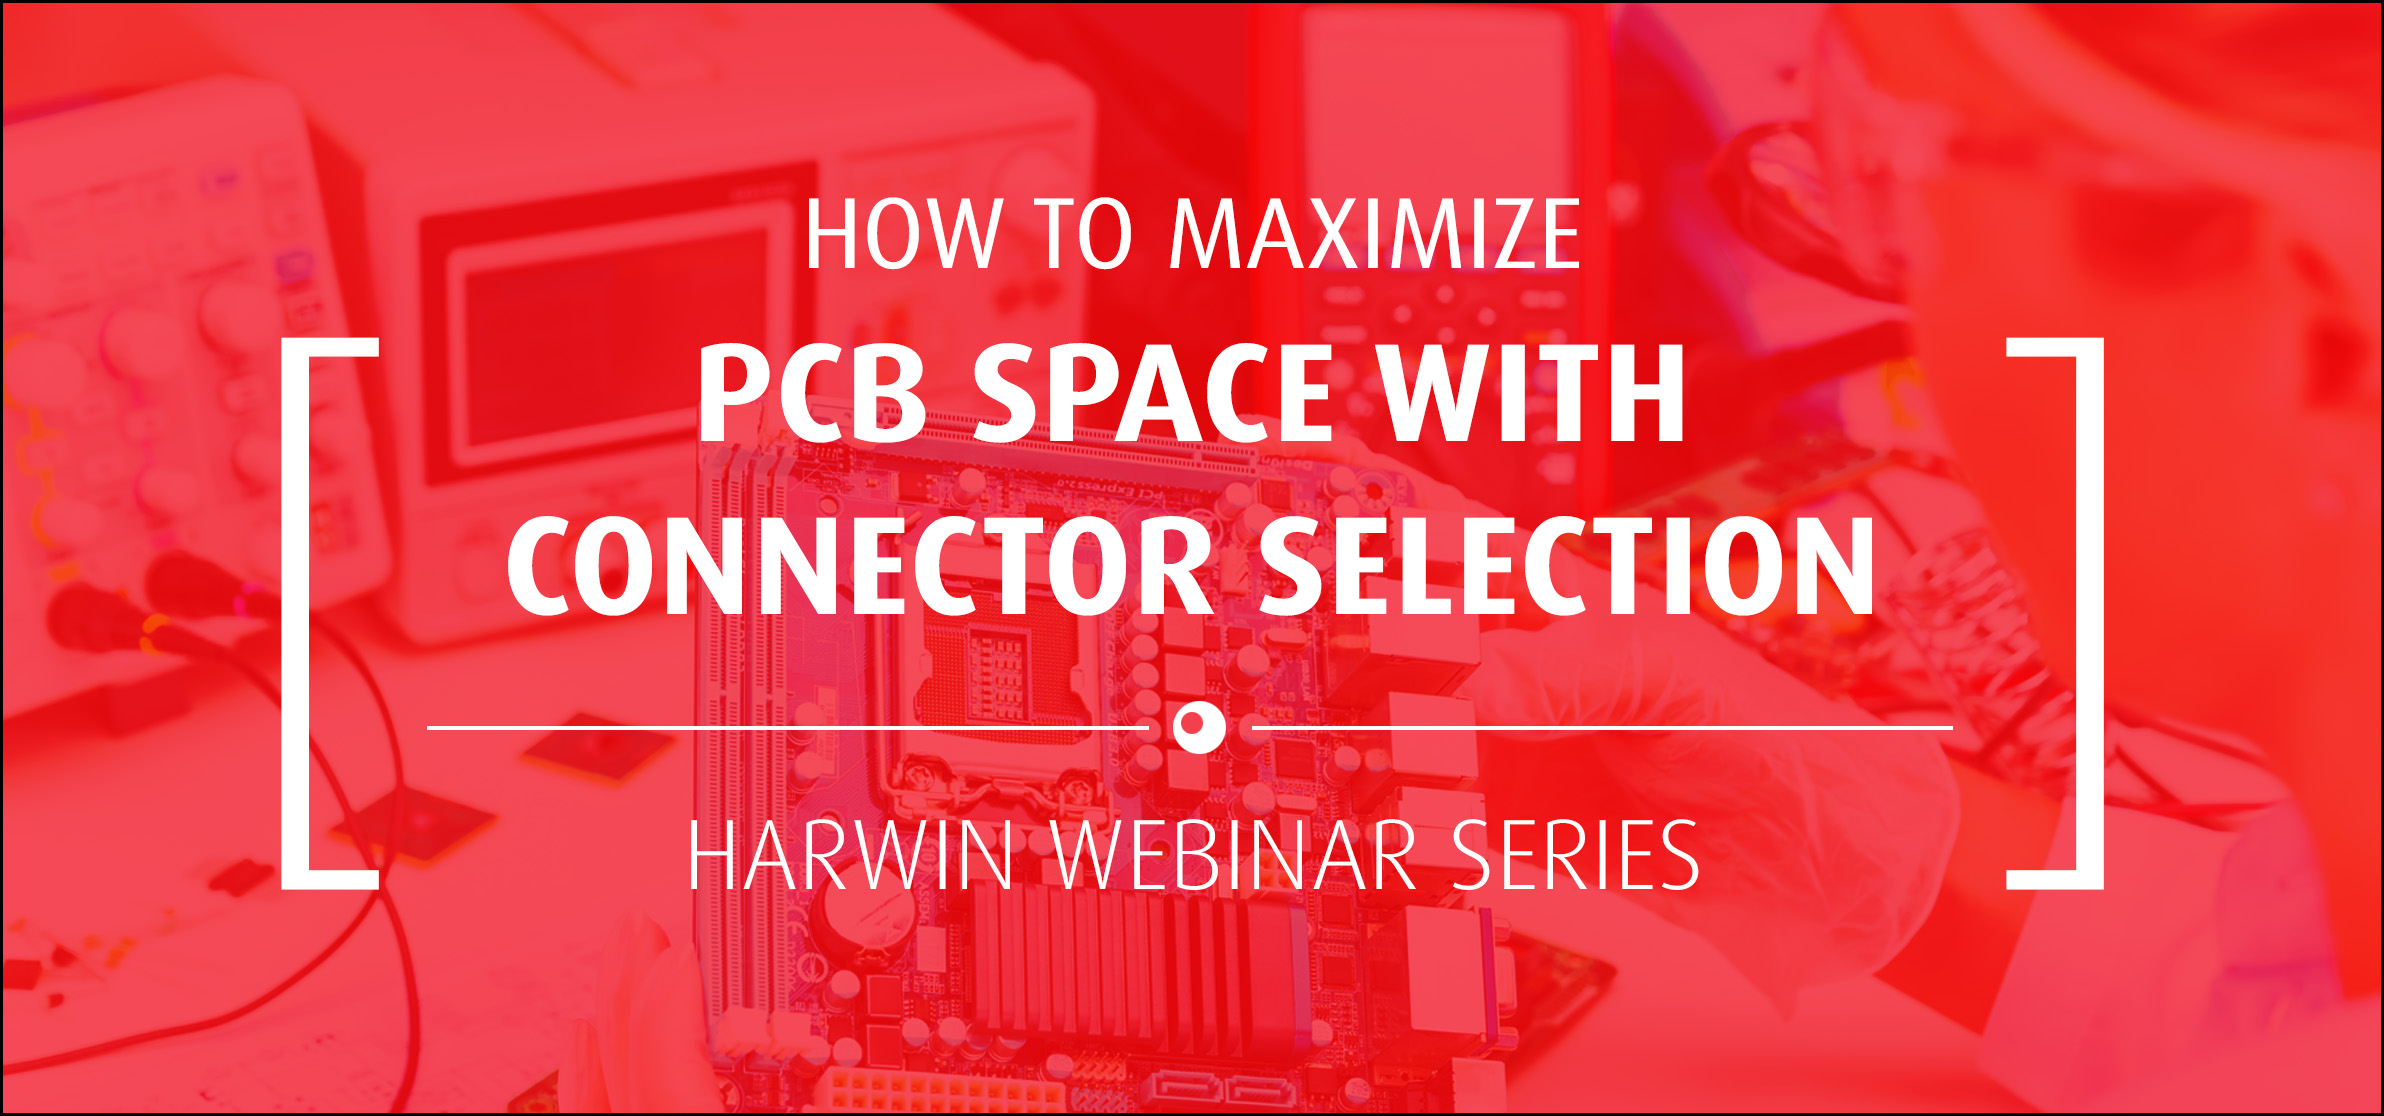 Wista video for How to Maximize PCB Space with Connector Selection